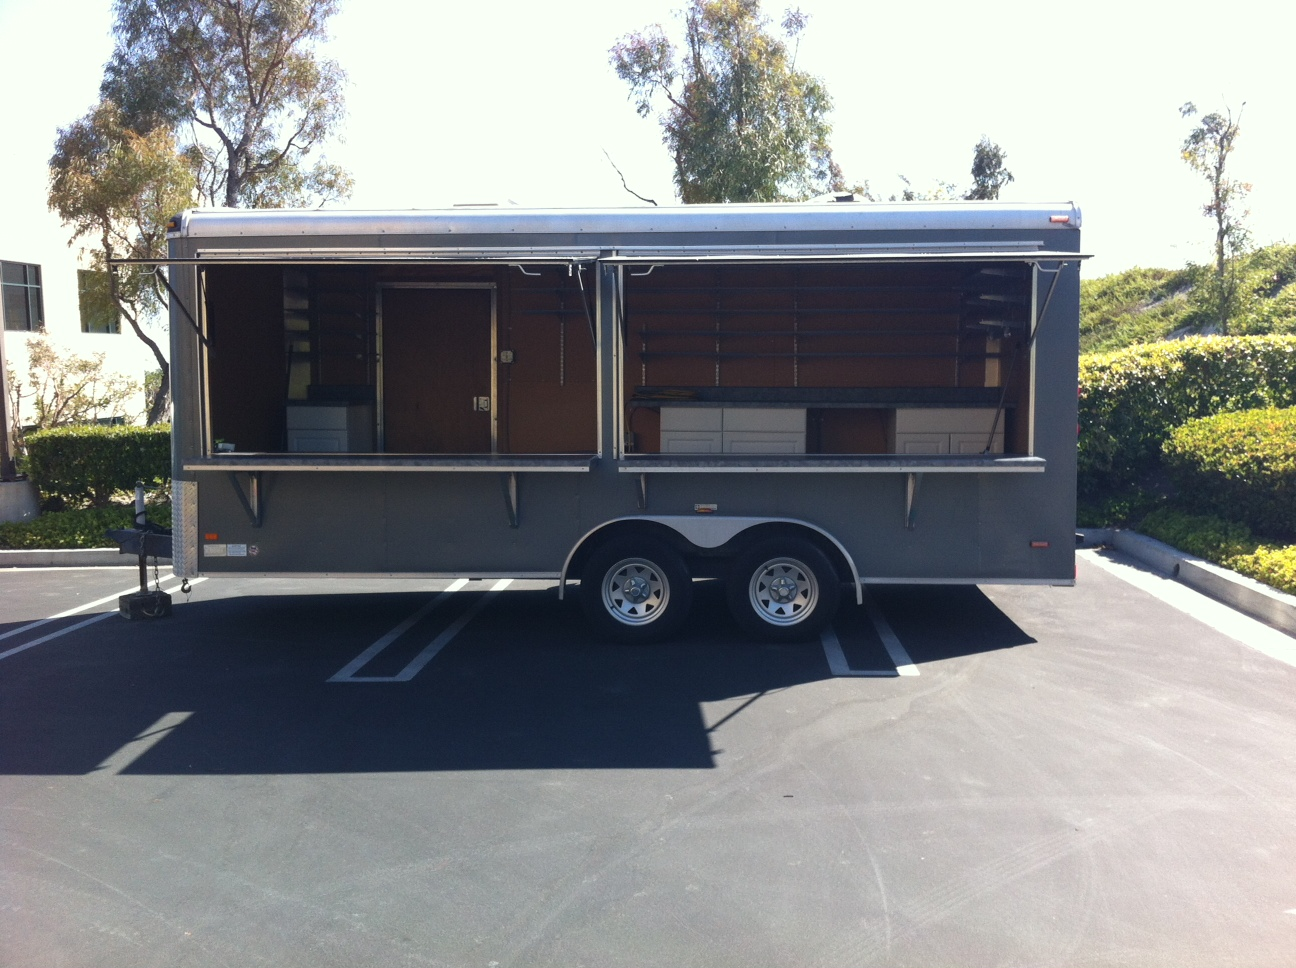 Beer Concession Trailers Bing Images